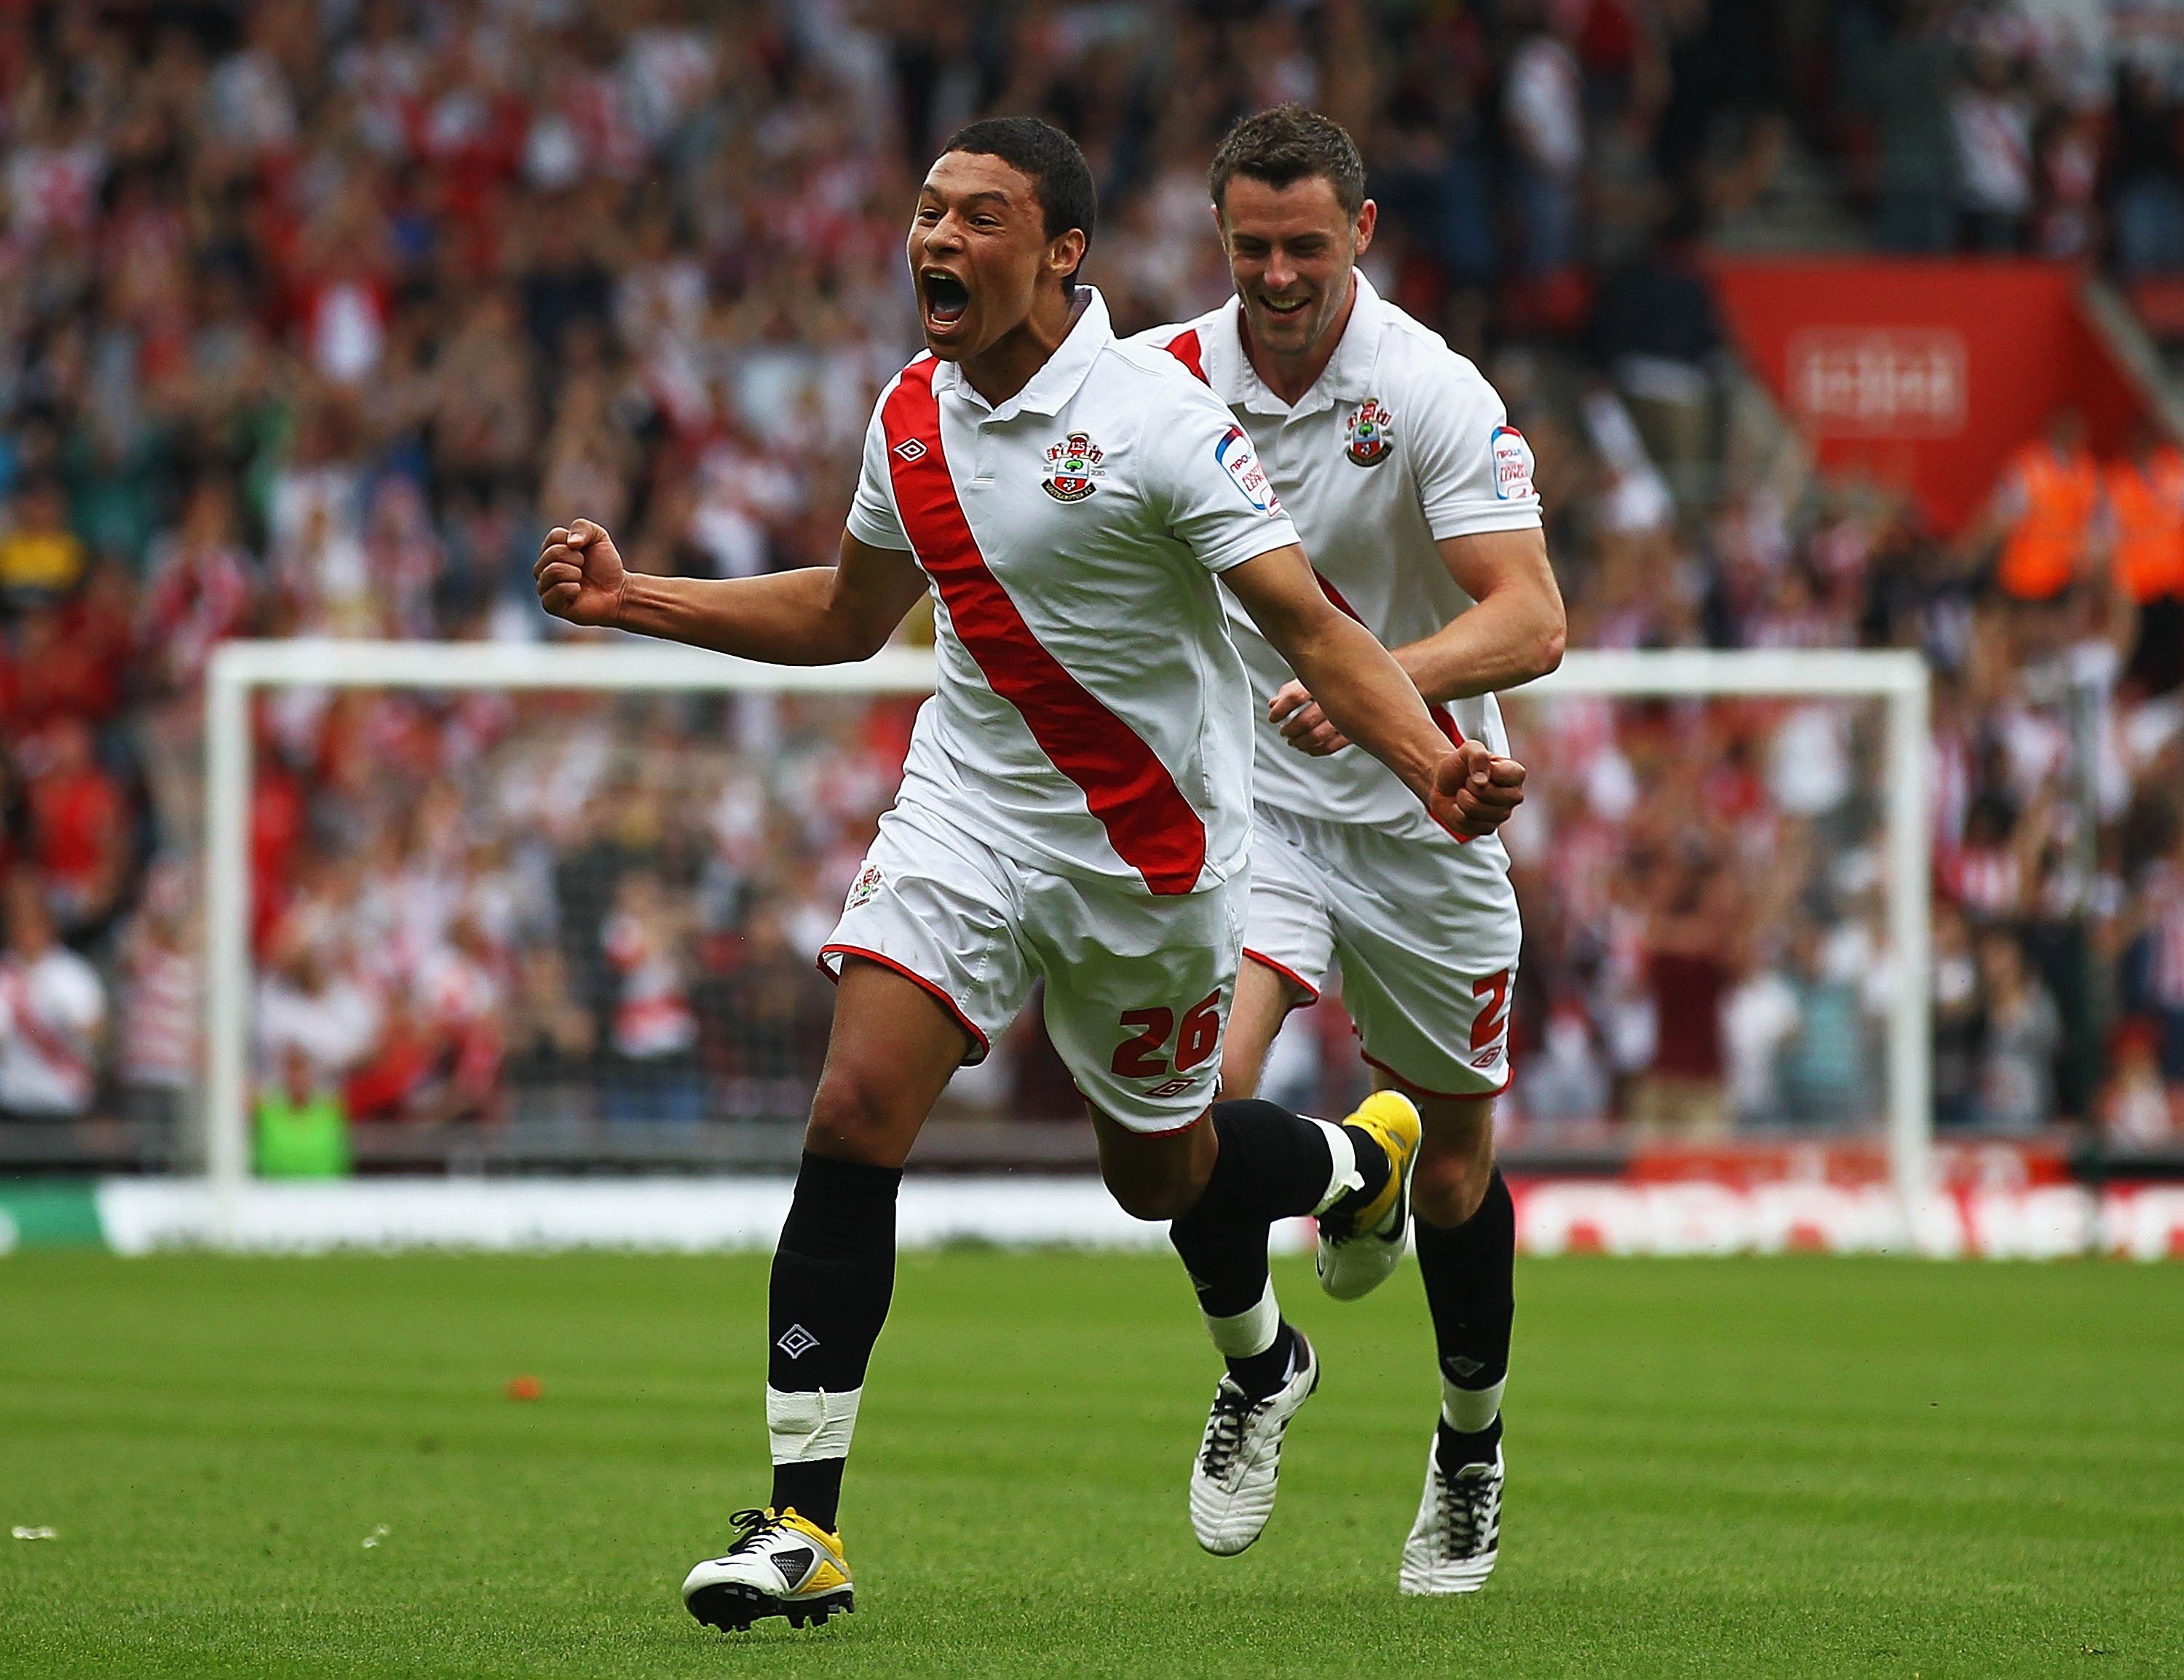 SOUTHAMPTON, ENGLAND - MAY 07:  Alex Chamberlain (L) of Southampton celebrates his goal with team mate Frazer Richardson during the npower League One match between Southampton and Walsall at St Mary's Stadium on May 7, 2011 in Southampton, England.  (Phot